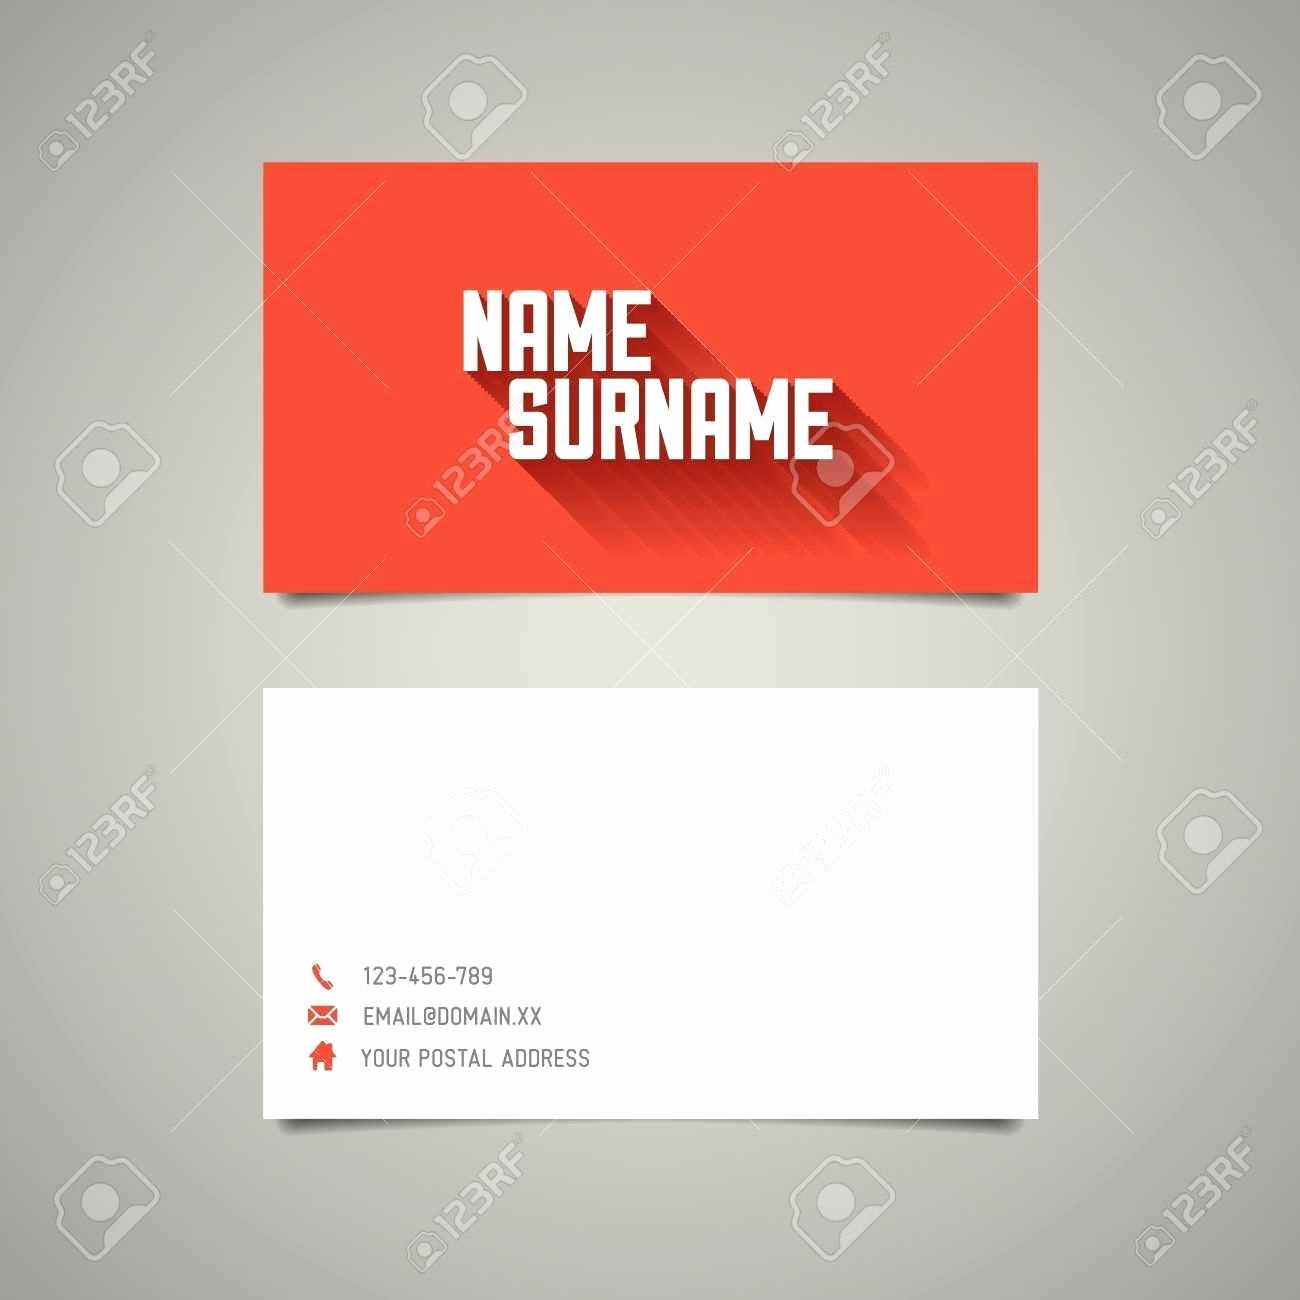 Microsoft Word Template Business Cards Fresh 12 Lovely Ms Word Business Card Templates Graphics